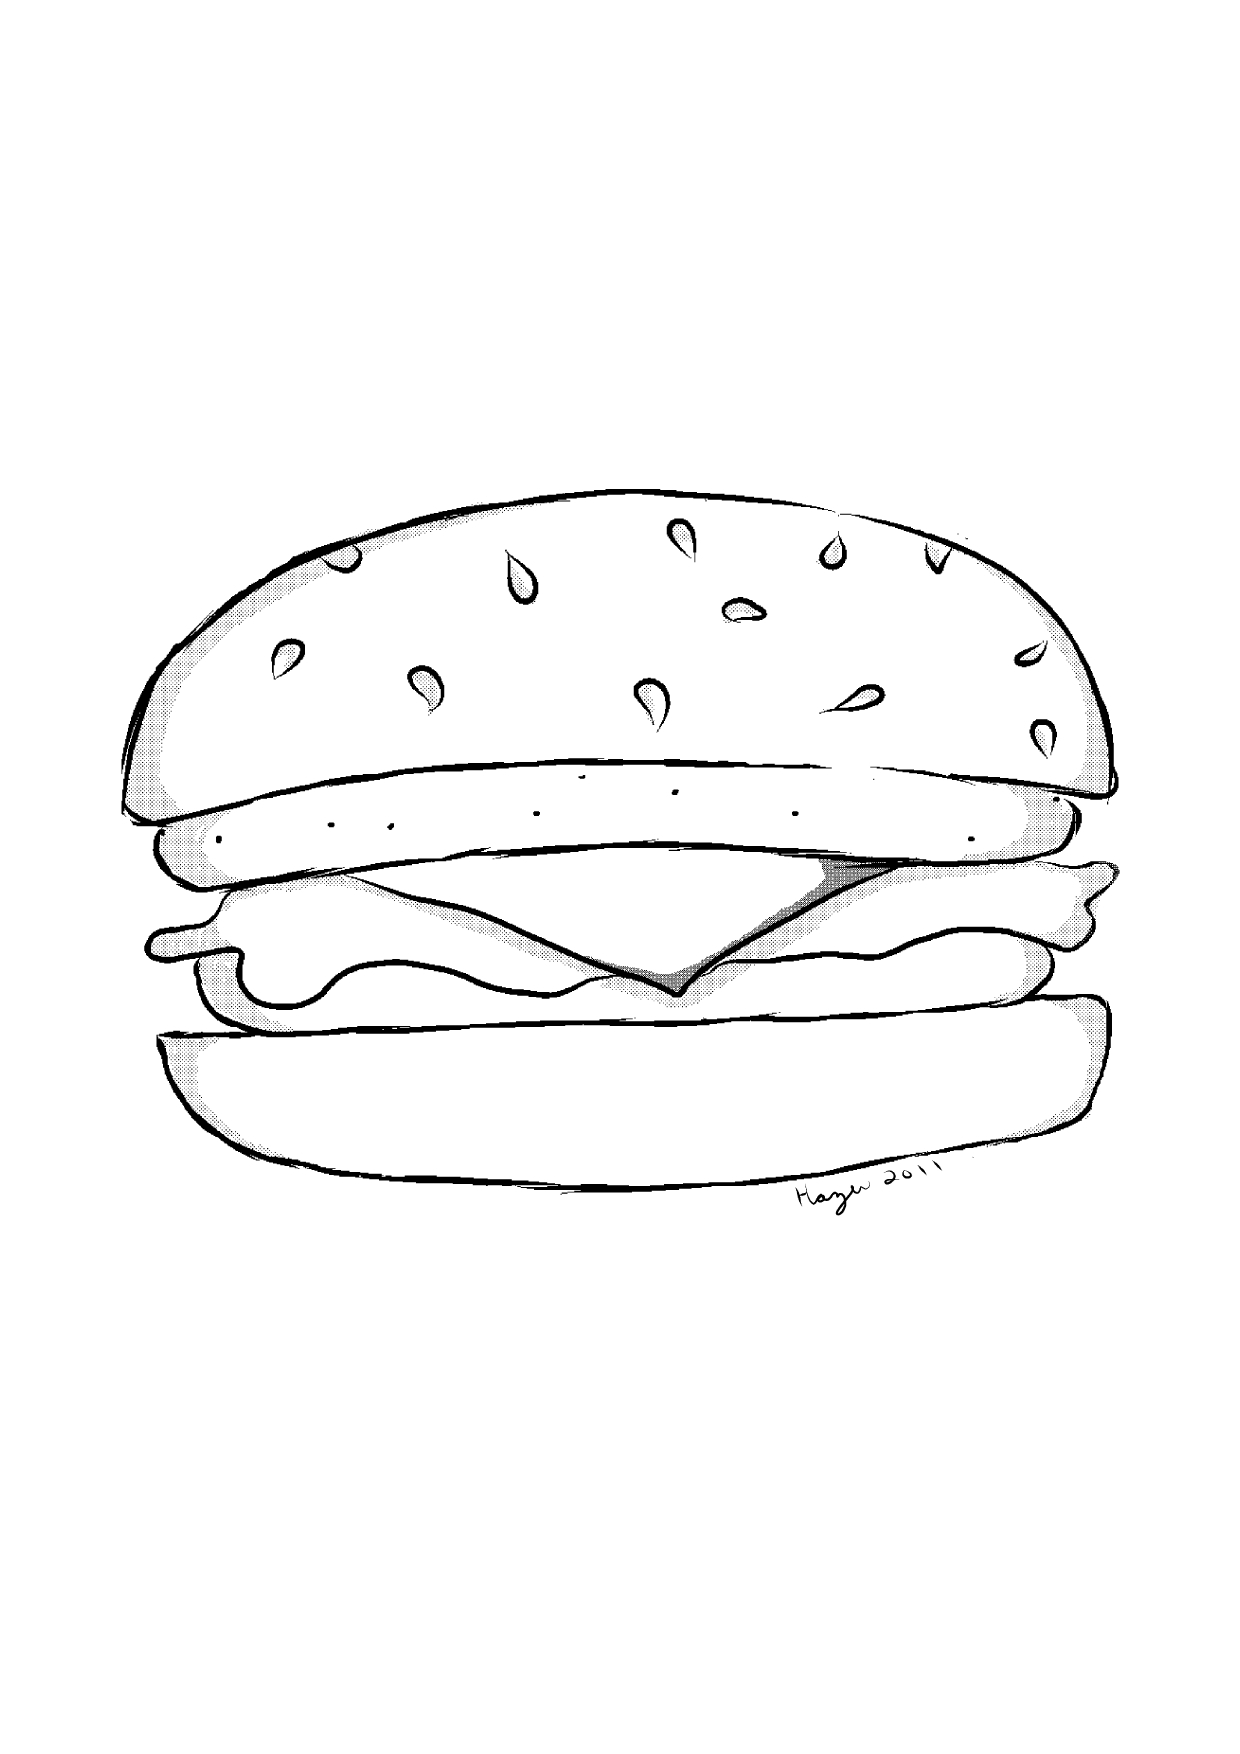 Cheeseburger Line Art By Hazuhazuheavn On Deviantart Cheeseburger Coloring Page